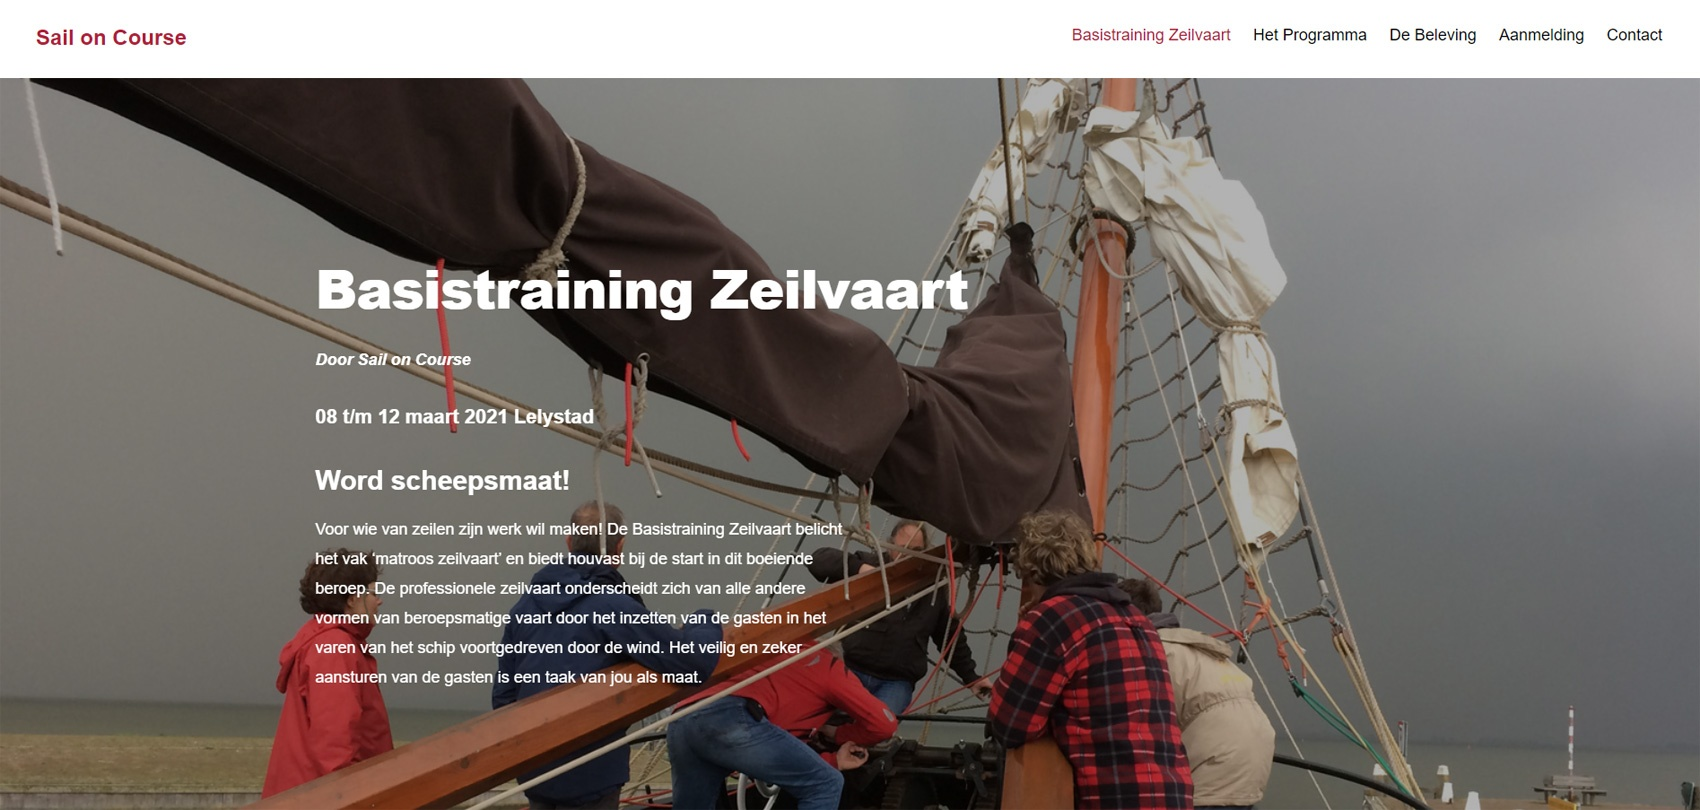 Sail on Course - Basistraining Zeilvaart